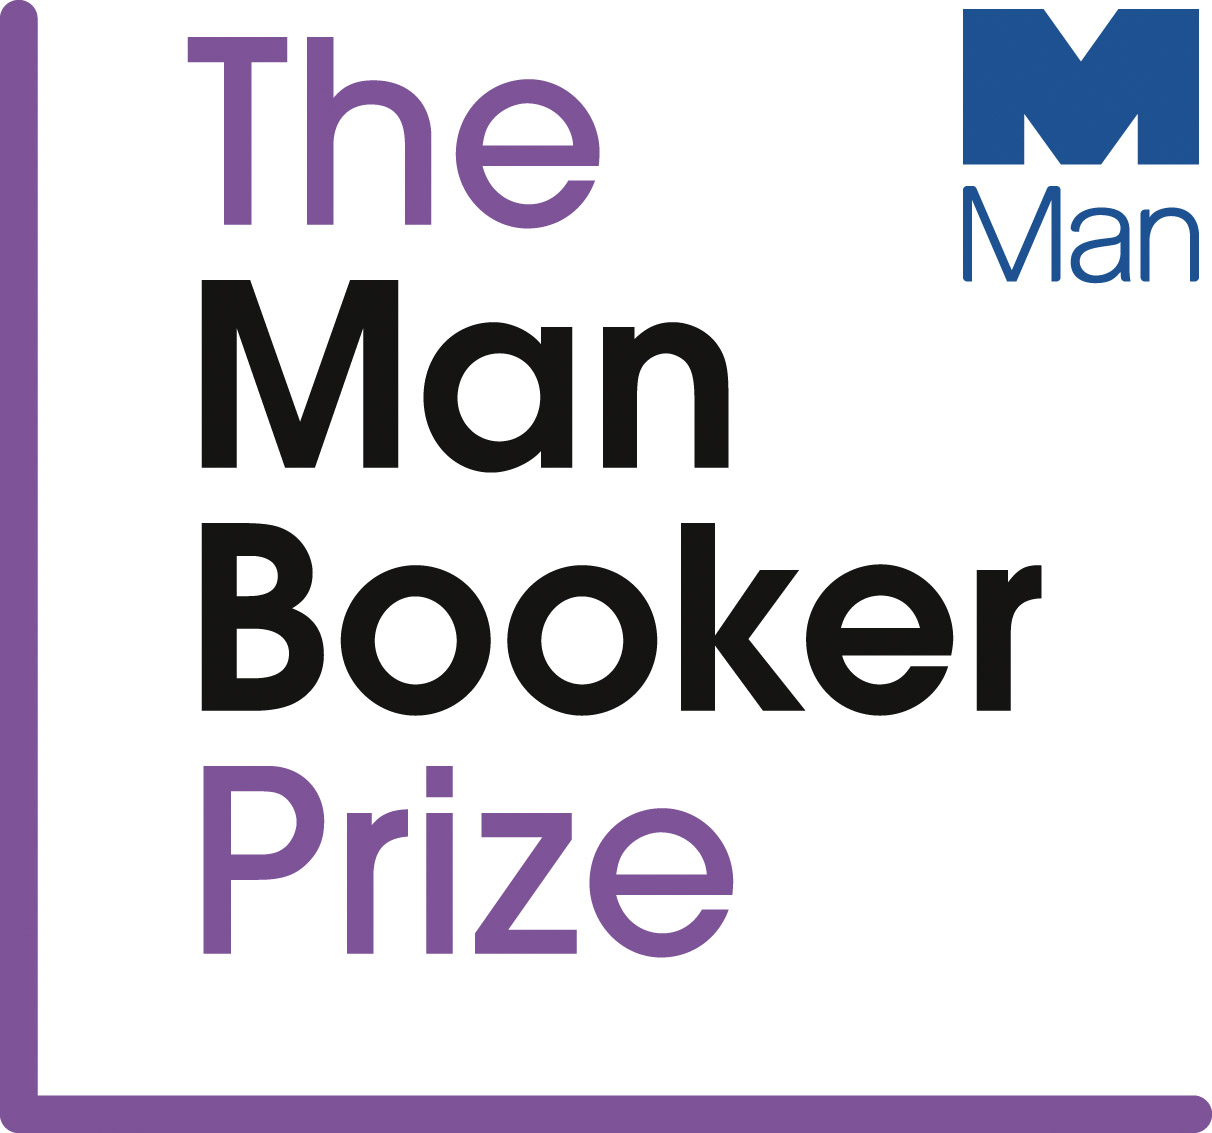 The Man Booker Prize winner and shortlist are available from RNIB